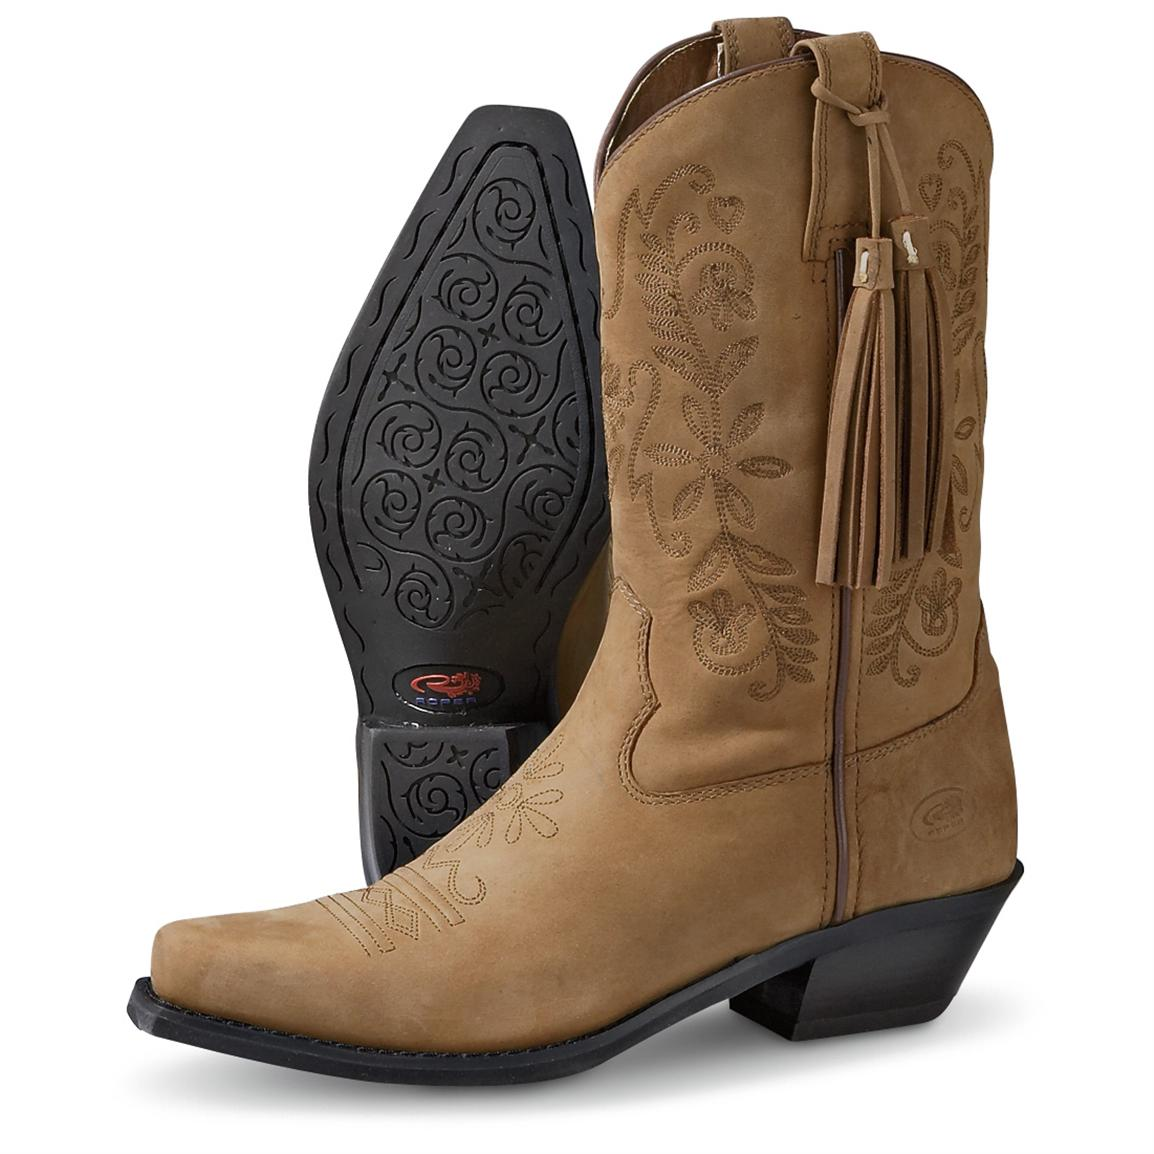 Fantastic Shyanne Womenu2019s 11u201d Brown Western Boots - Square Toe - Country Outfitter